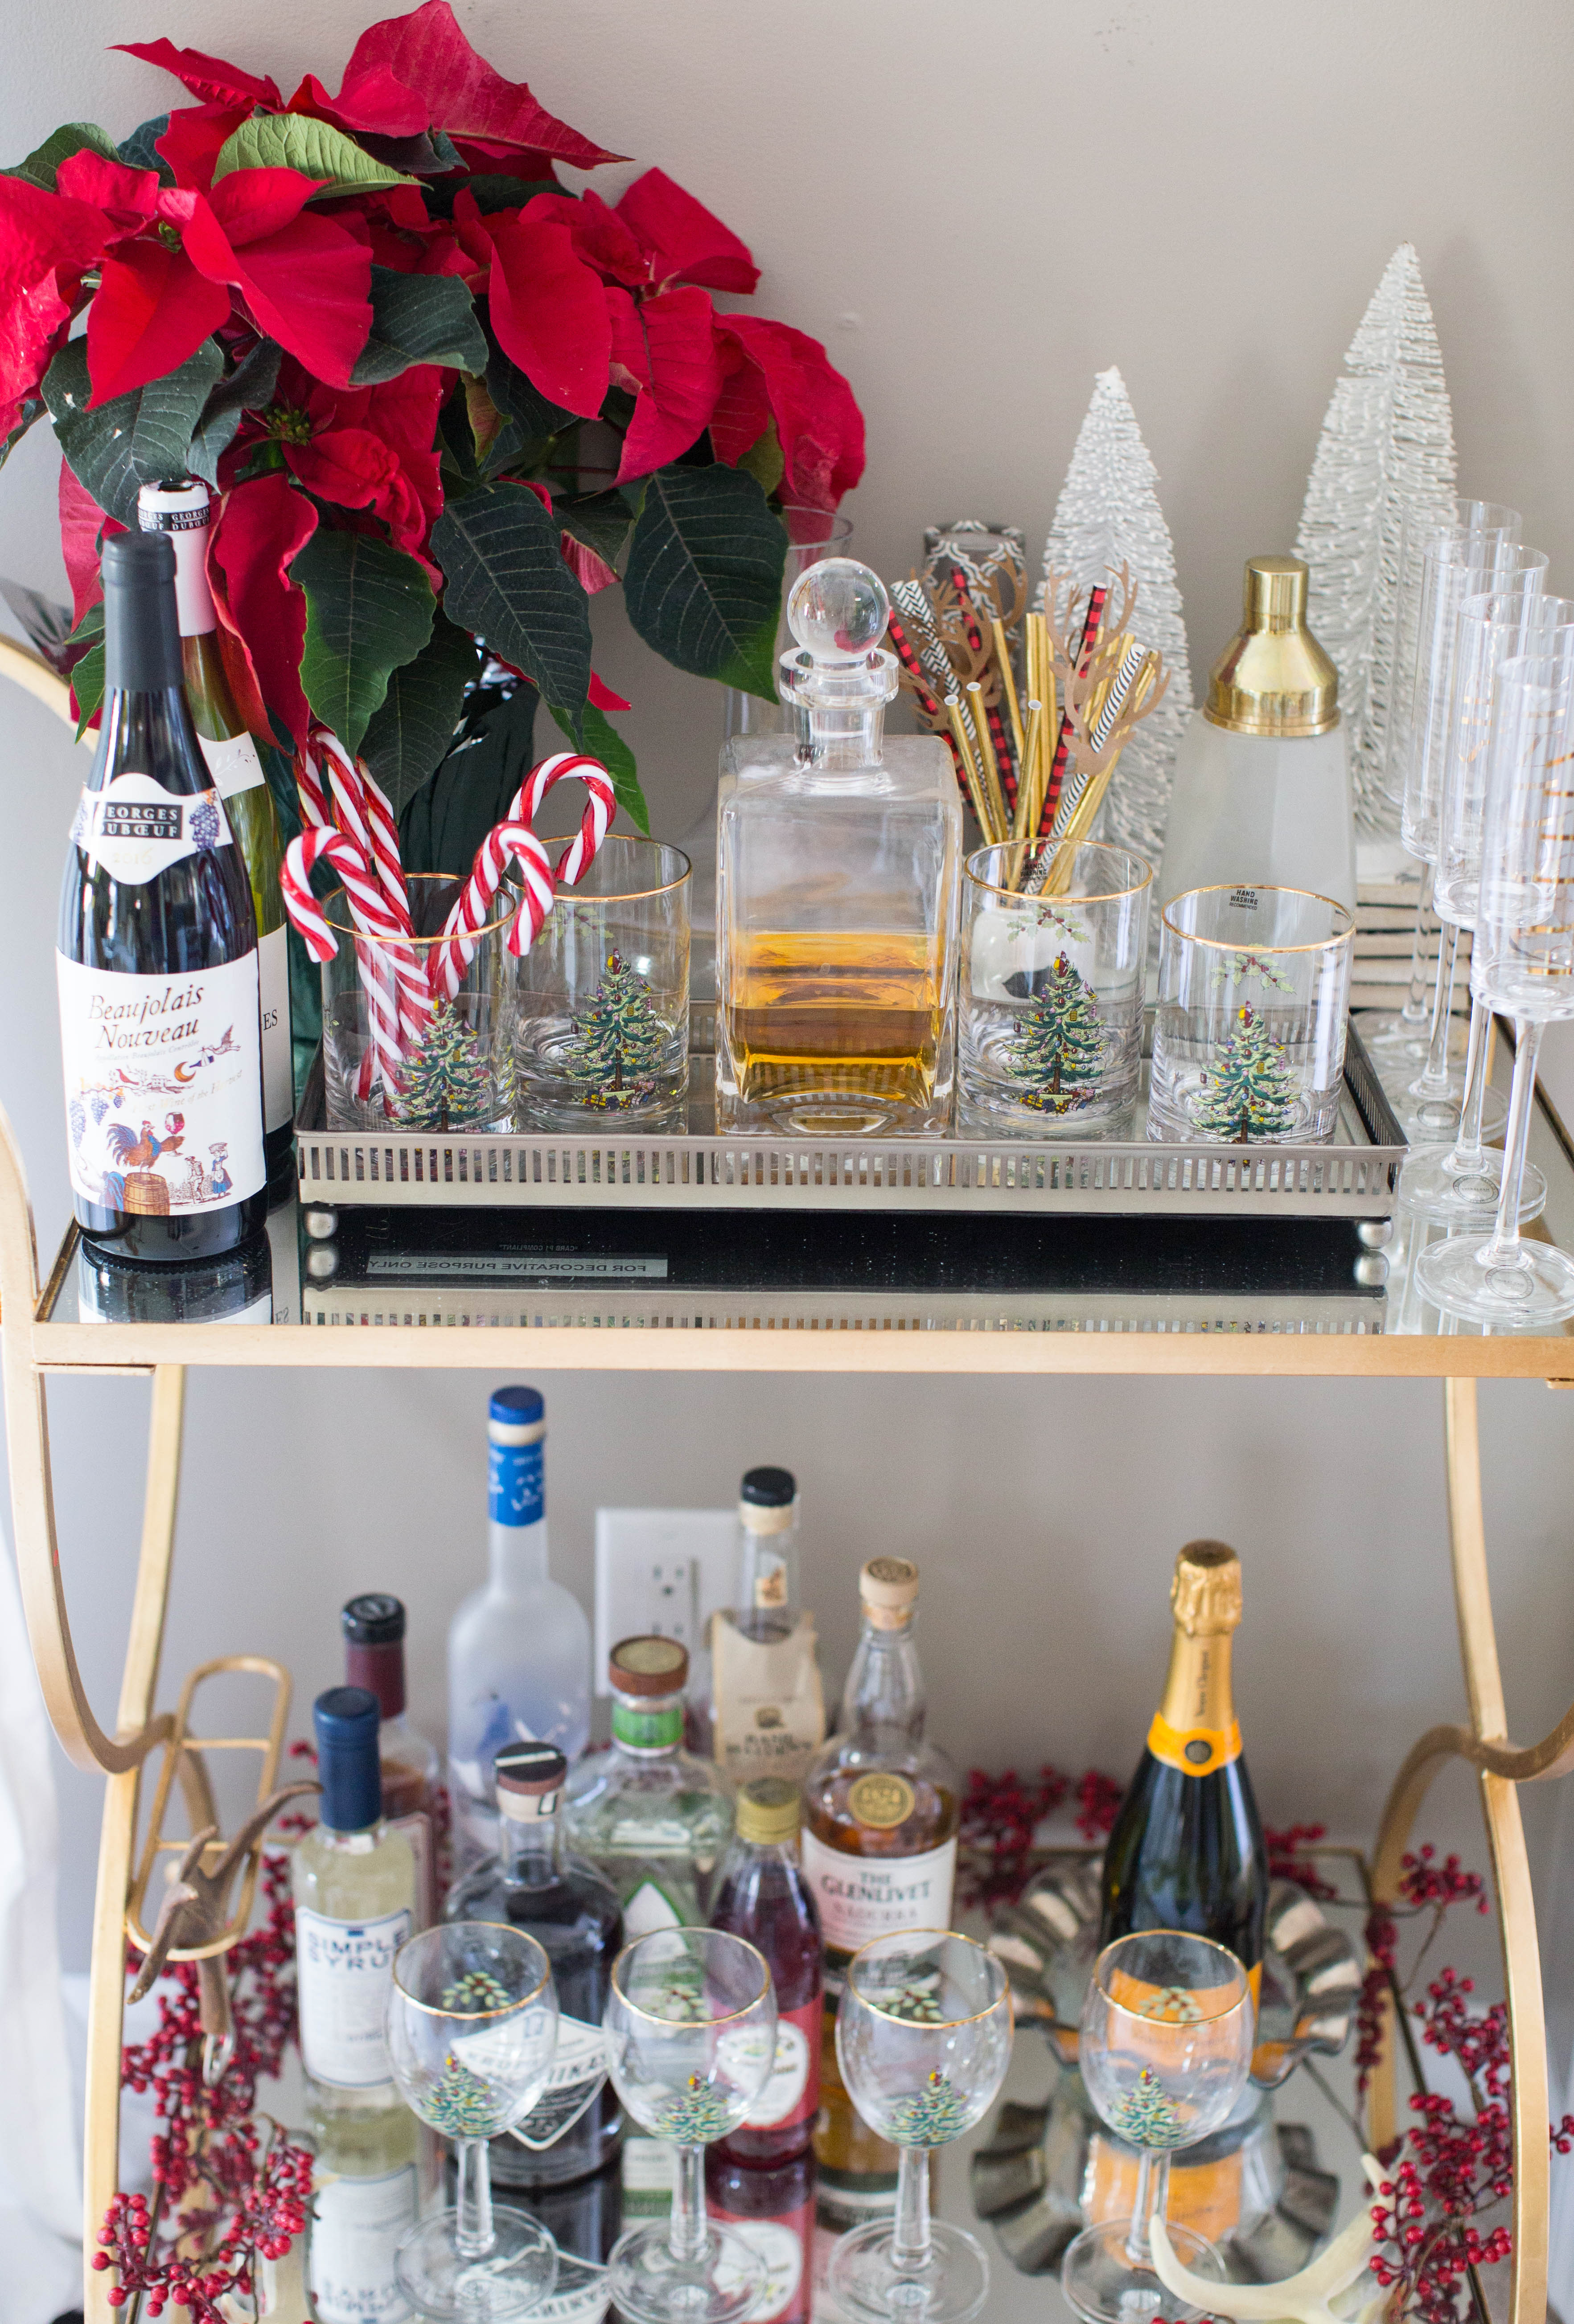 img_3828 - 3 Awesome Holiday Bar Cart Ideas by North Carolina style blogger Coffee Beans and Bobby Pins